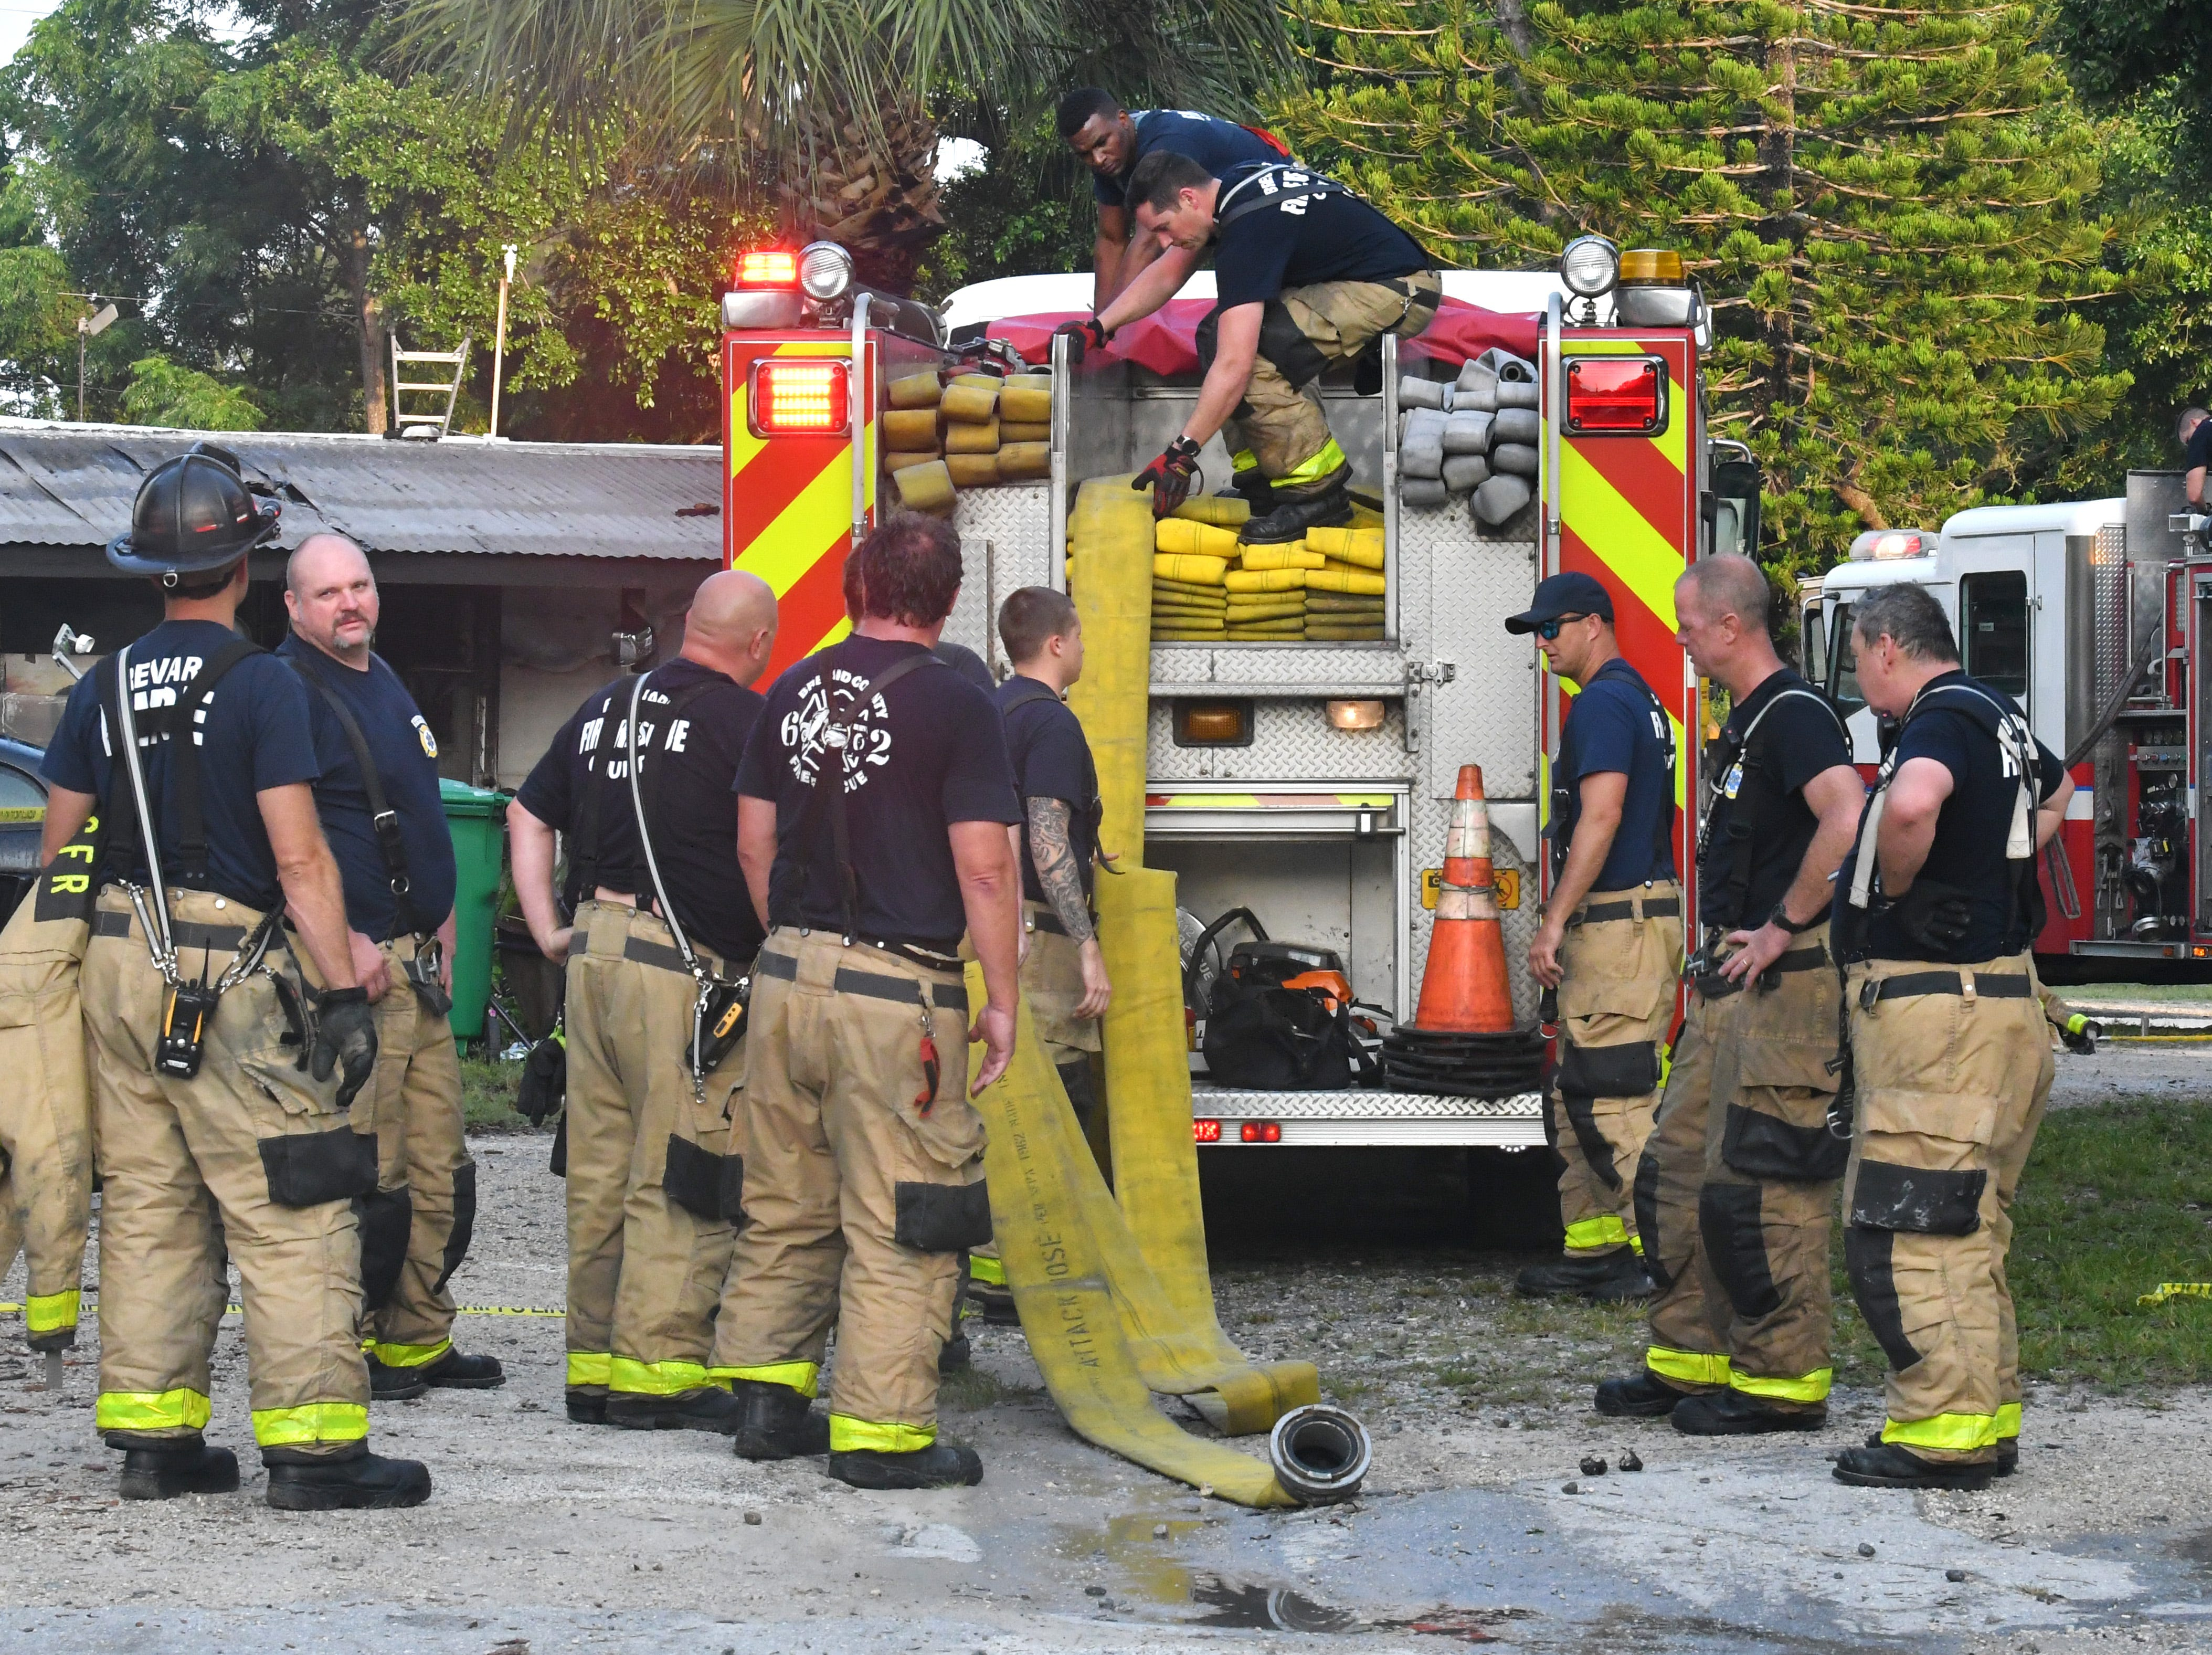 Multiple units of BCFR responded to an early Tuesday morning fire at a manufactured home on Allen Hill Ave. in Palm Shores off of U.S. 1, north of Pineda Causeway. One person was taken to the hospital. Southbound traffic on U.S.1 was backed up due to the emergency vehicle on the road.